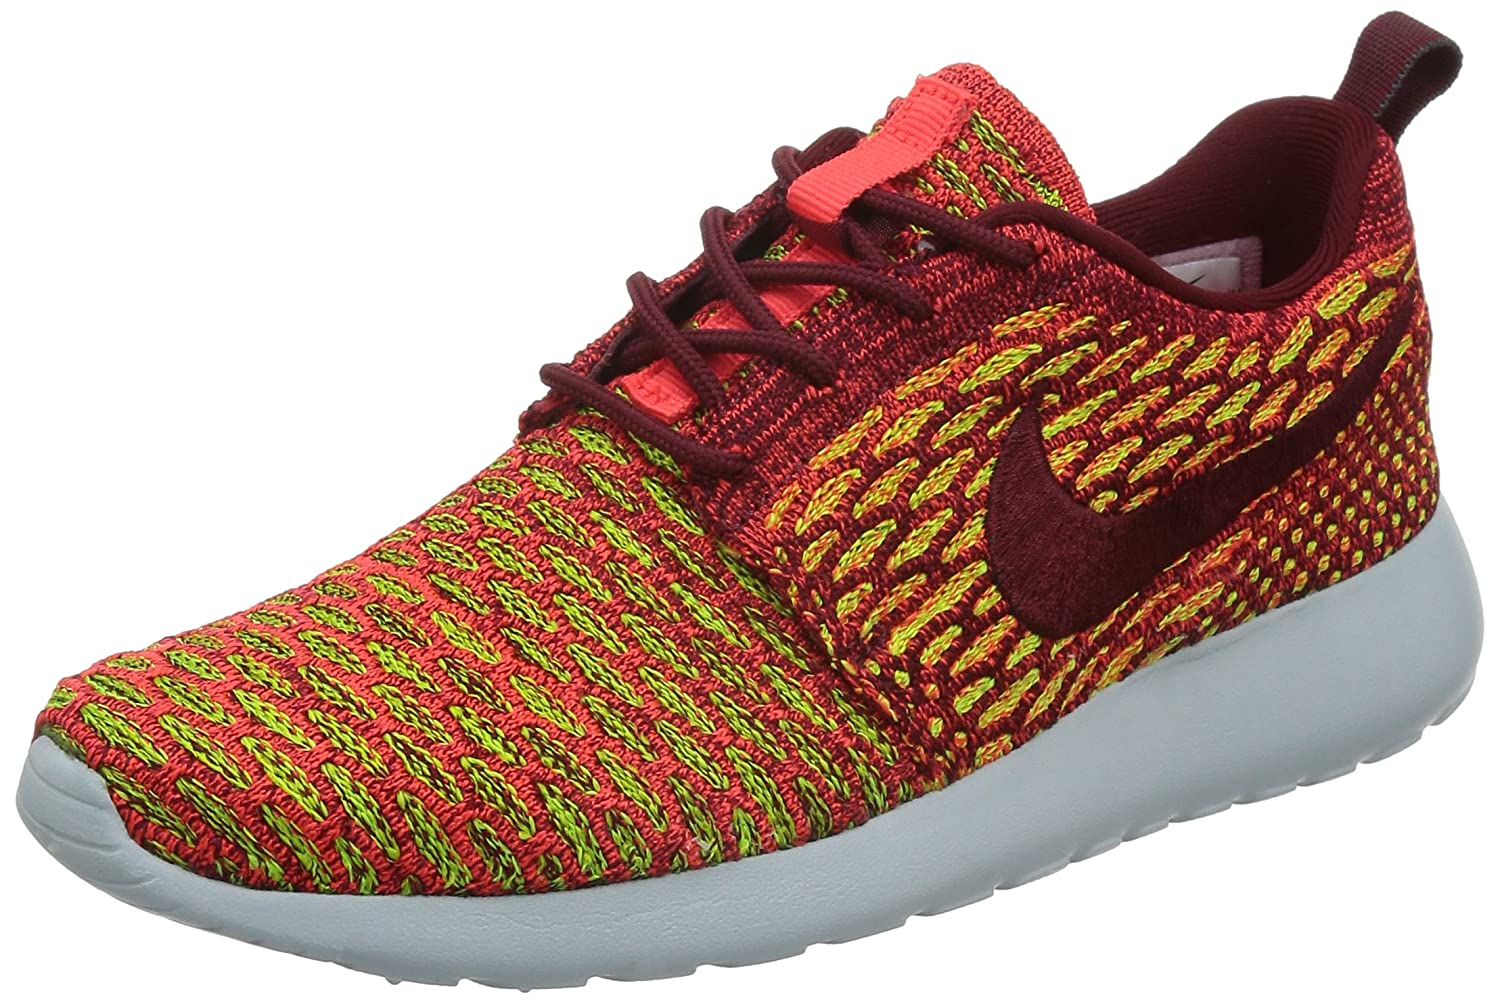 NIKE Womens Roshe One Flyknit Flyknit Colorblock Running Shoes B01714NYTG 8 B(M) US|Team Red/Bright Crimson/Volt